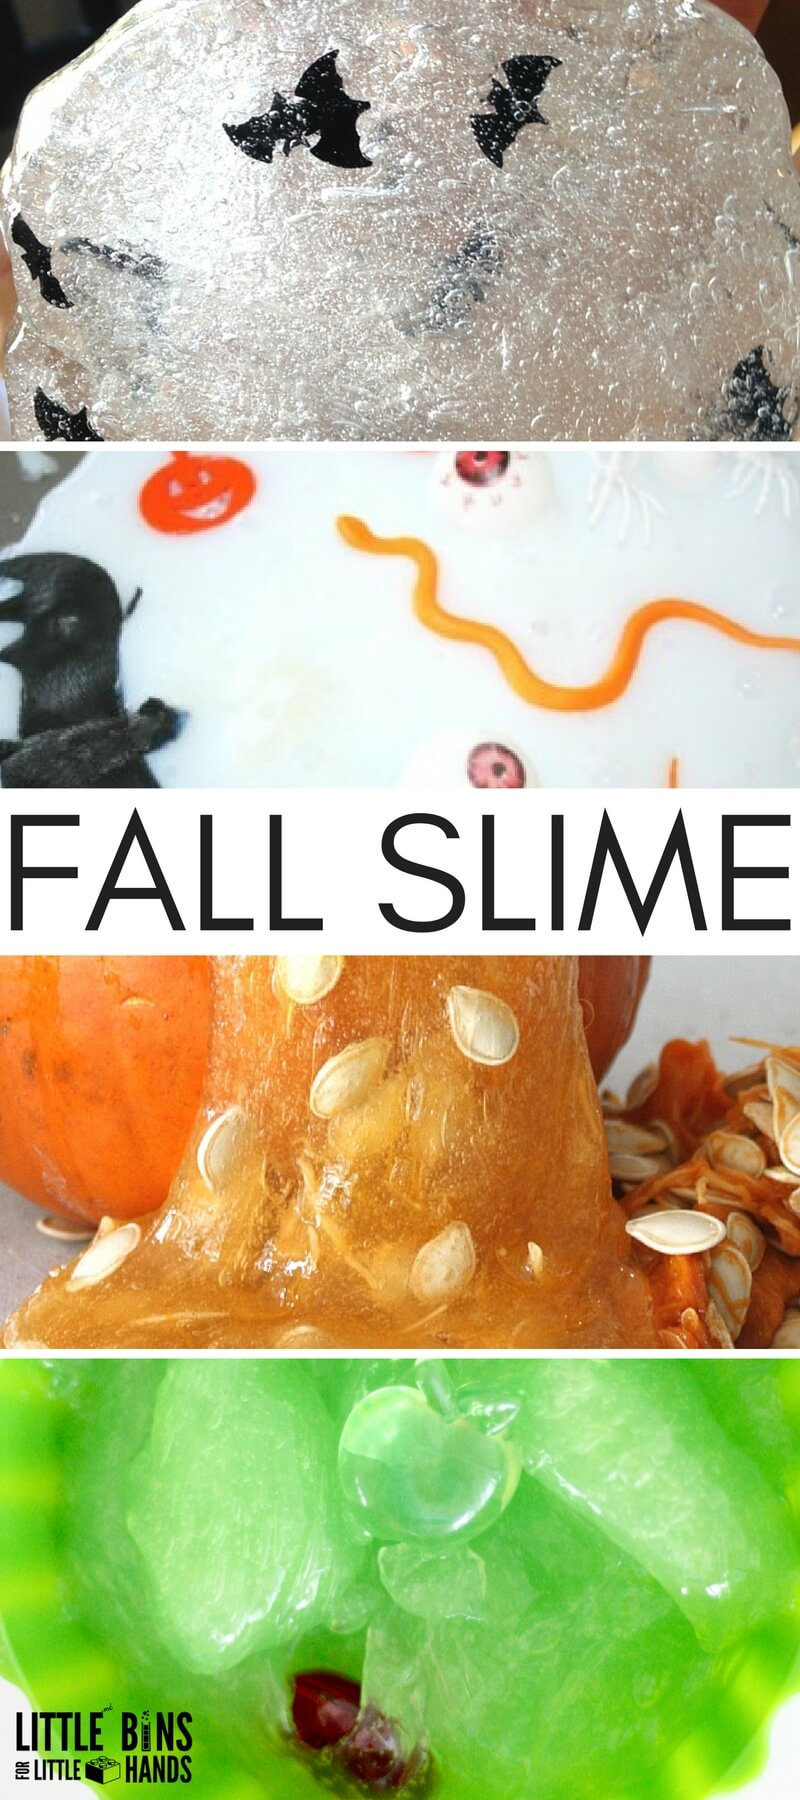 Fall slime ideas for pumpkin slime, apple slime, and Halloween slime recipe ideas for kids!